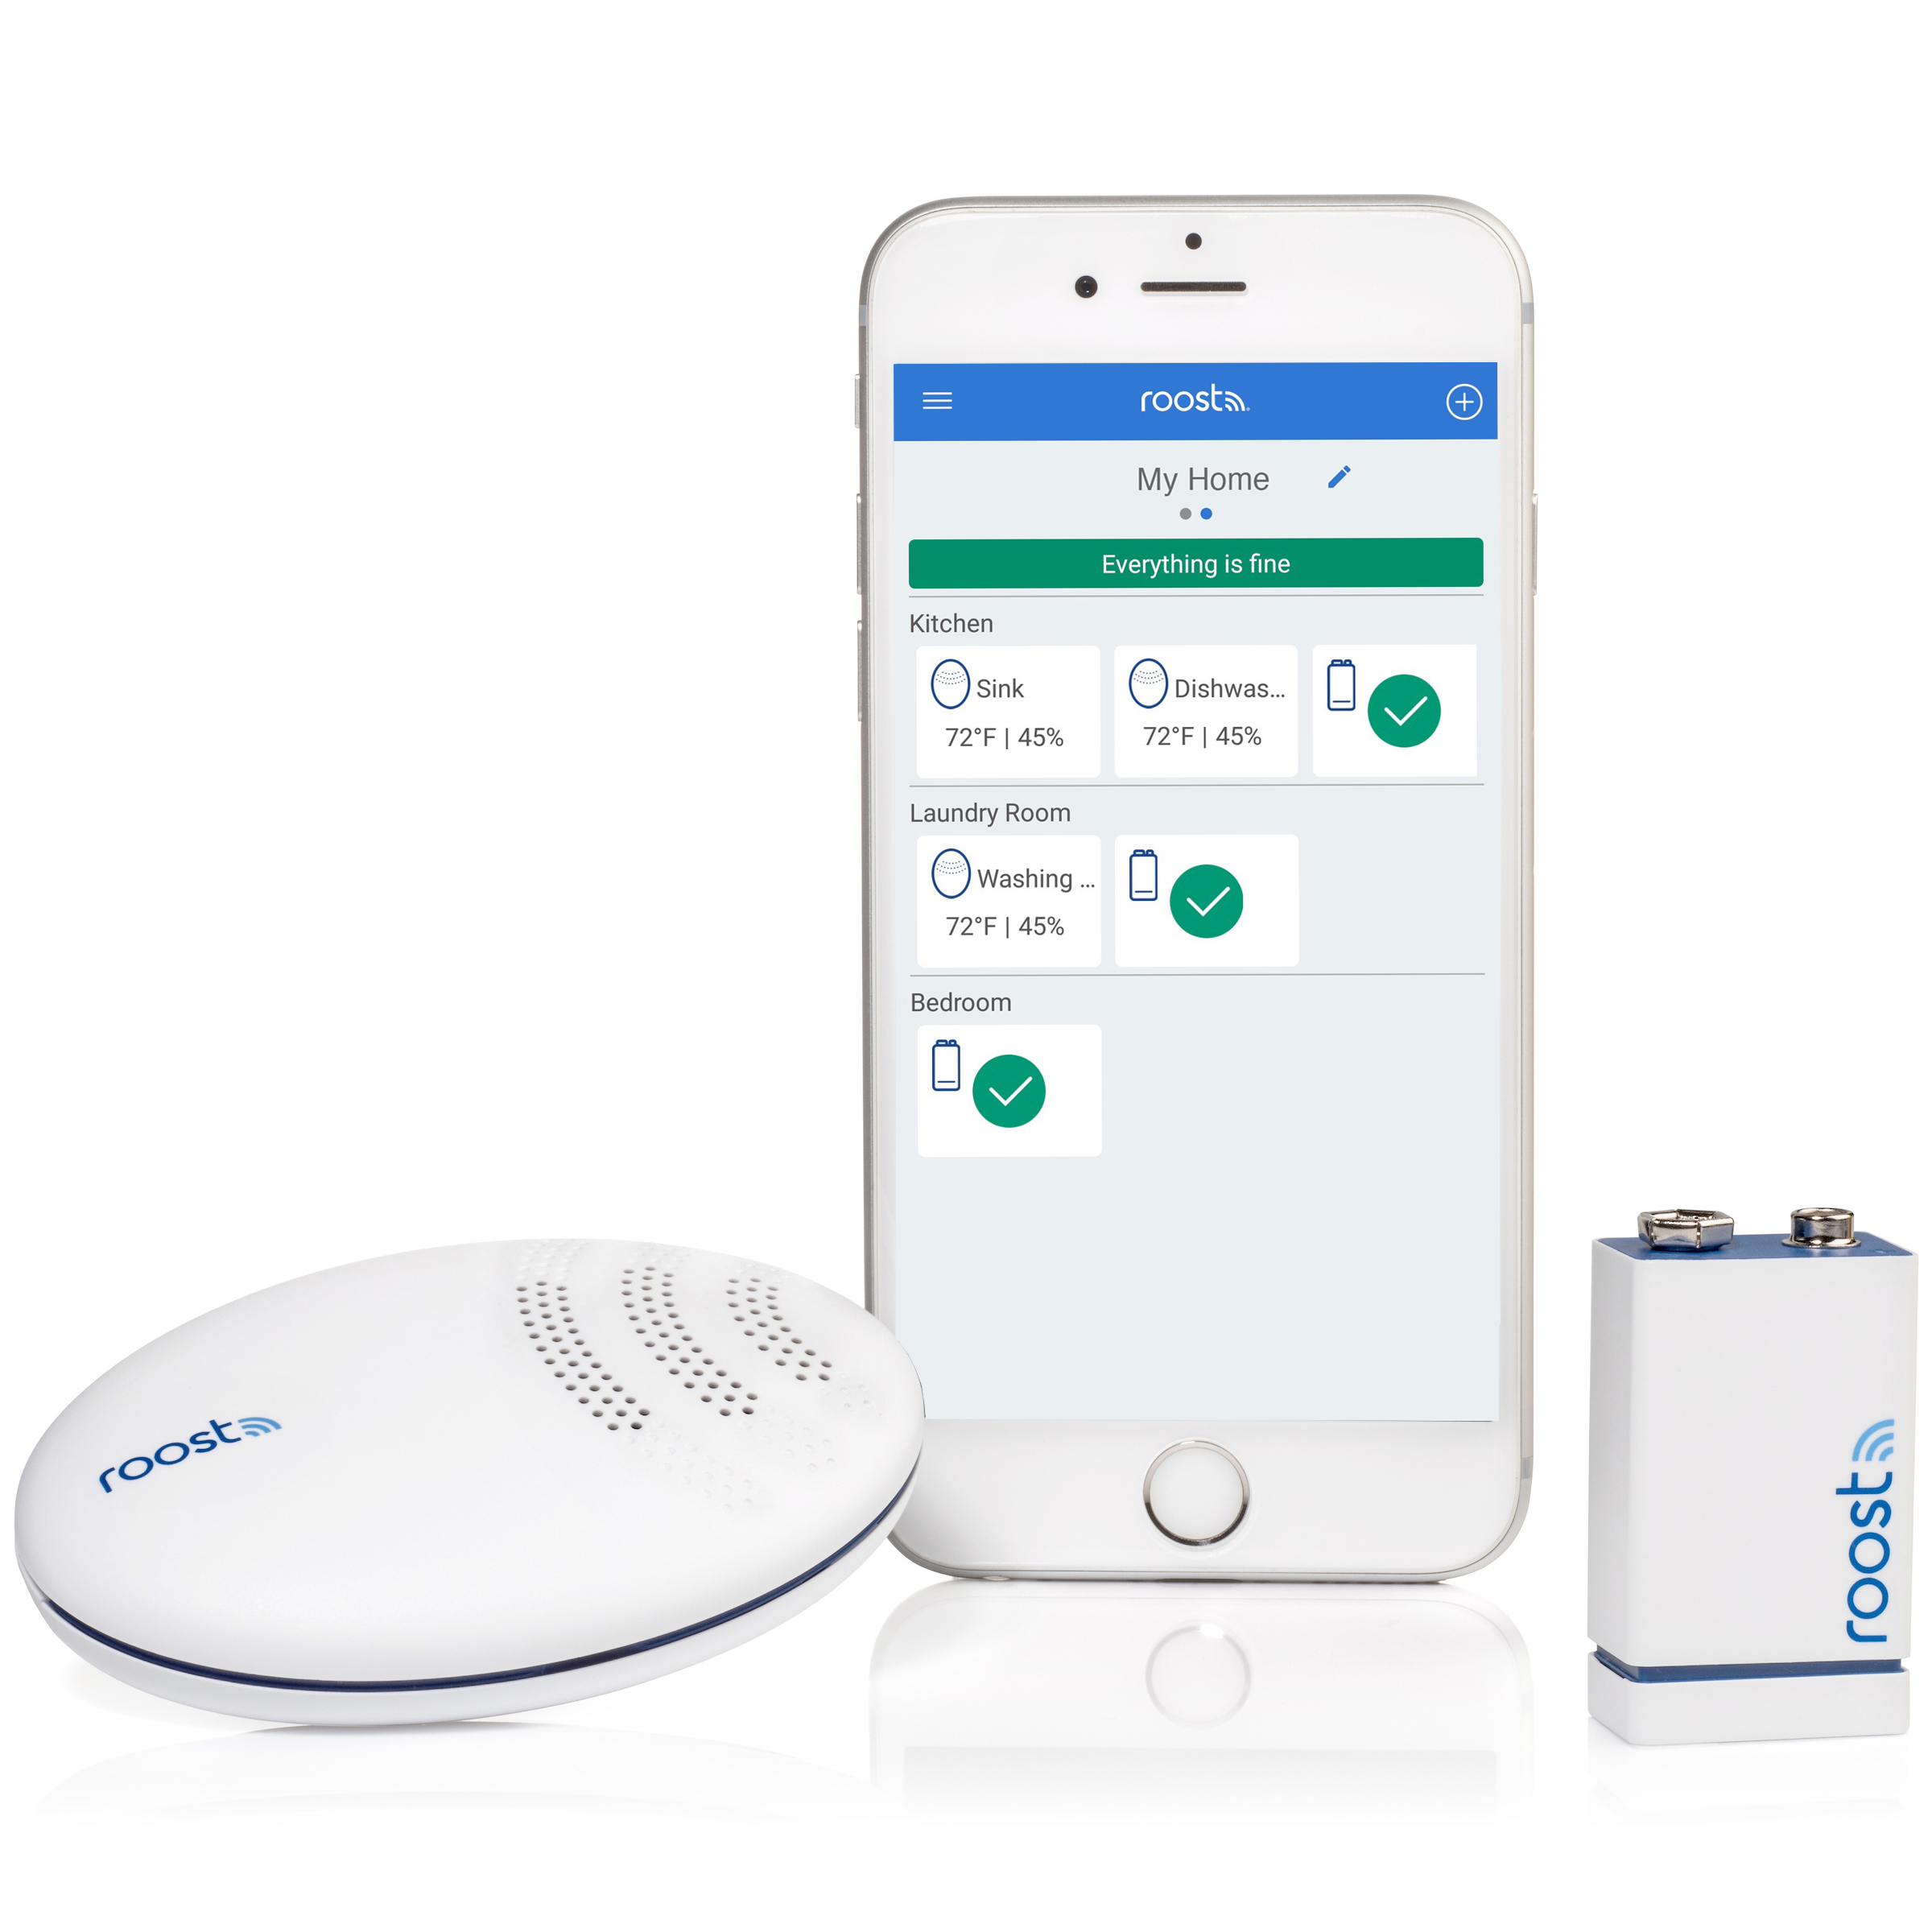 Roost Mobile App, Roost Smart Battery and Roost Smart Water Leak and Freeze Detector